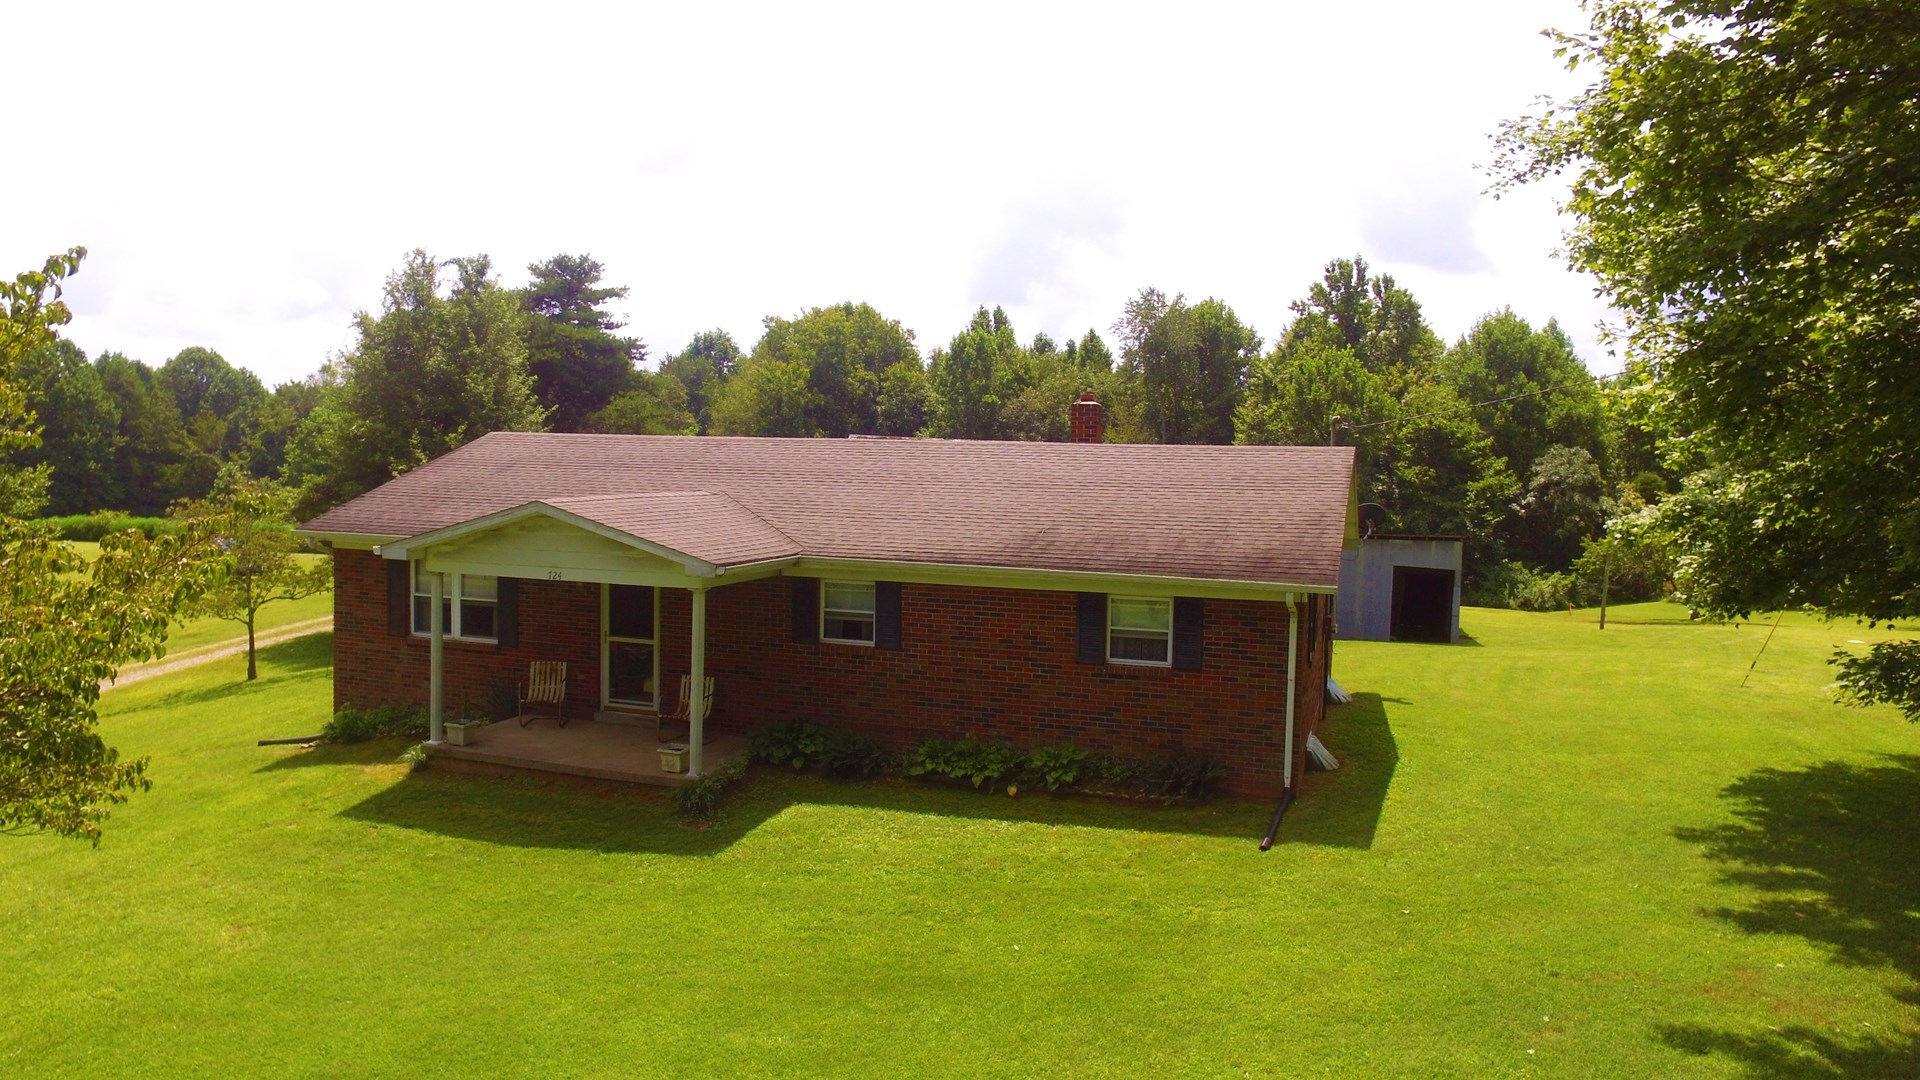 BRICK HOME-BASEMENT-3 ACRES-EQUIPMENT SHED-CASEY CO. KY.